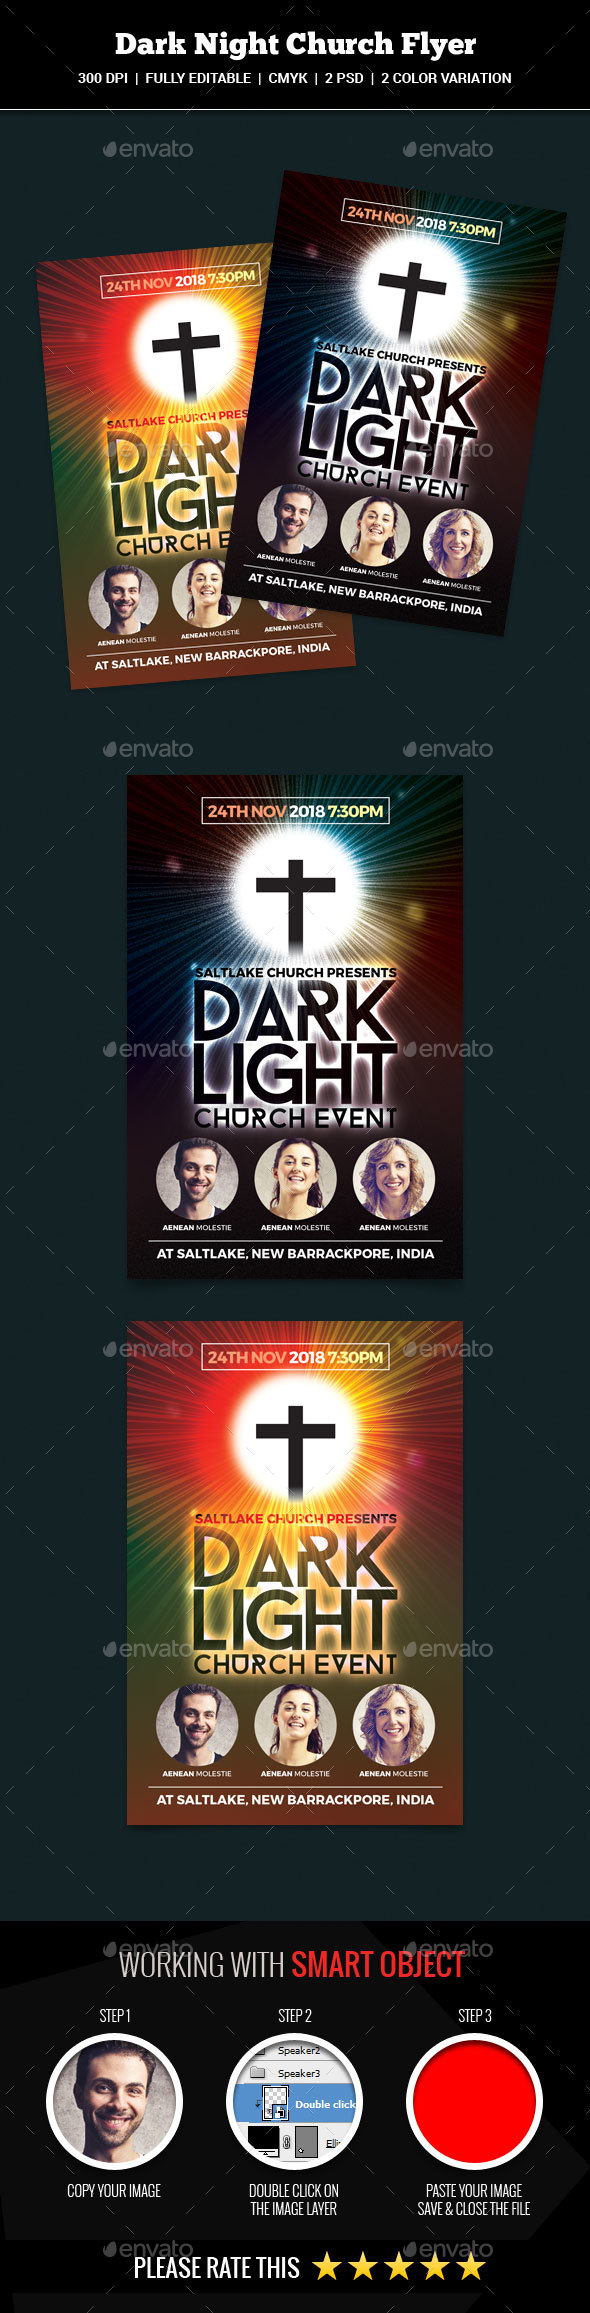 Dark Night Church Flyer - Church Flyers